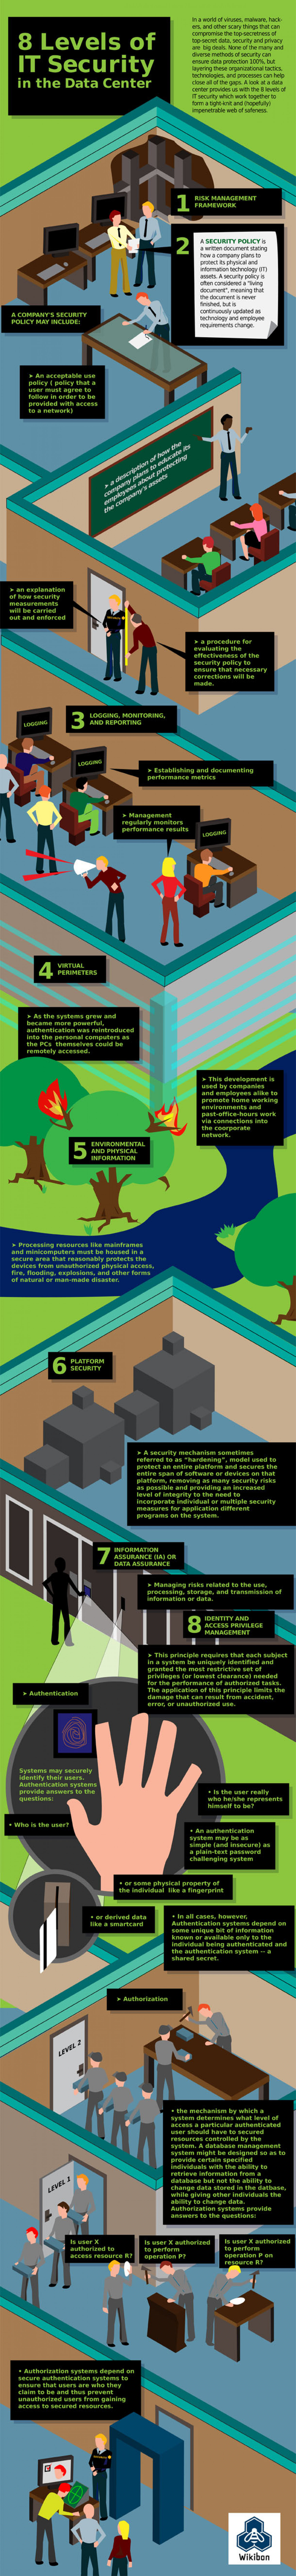 The 8 Levels of IT Security in The Data Center Infographic